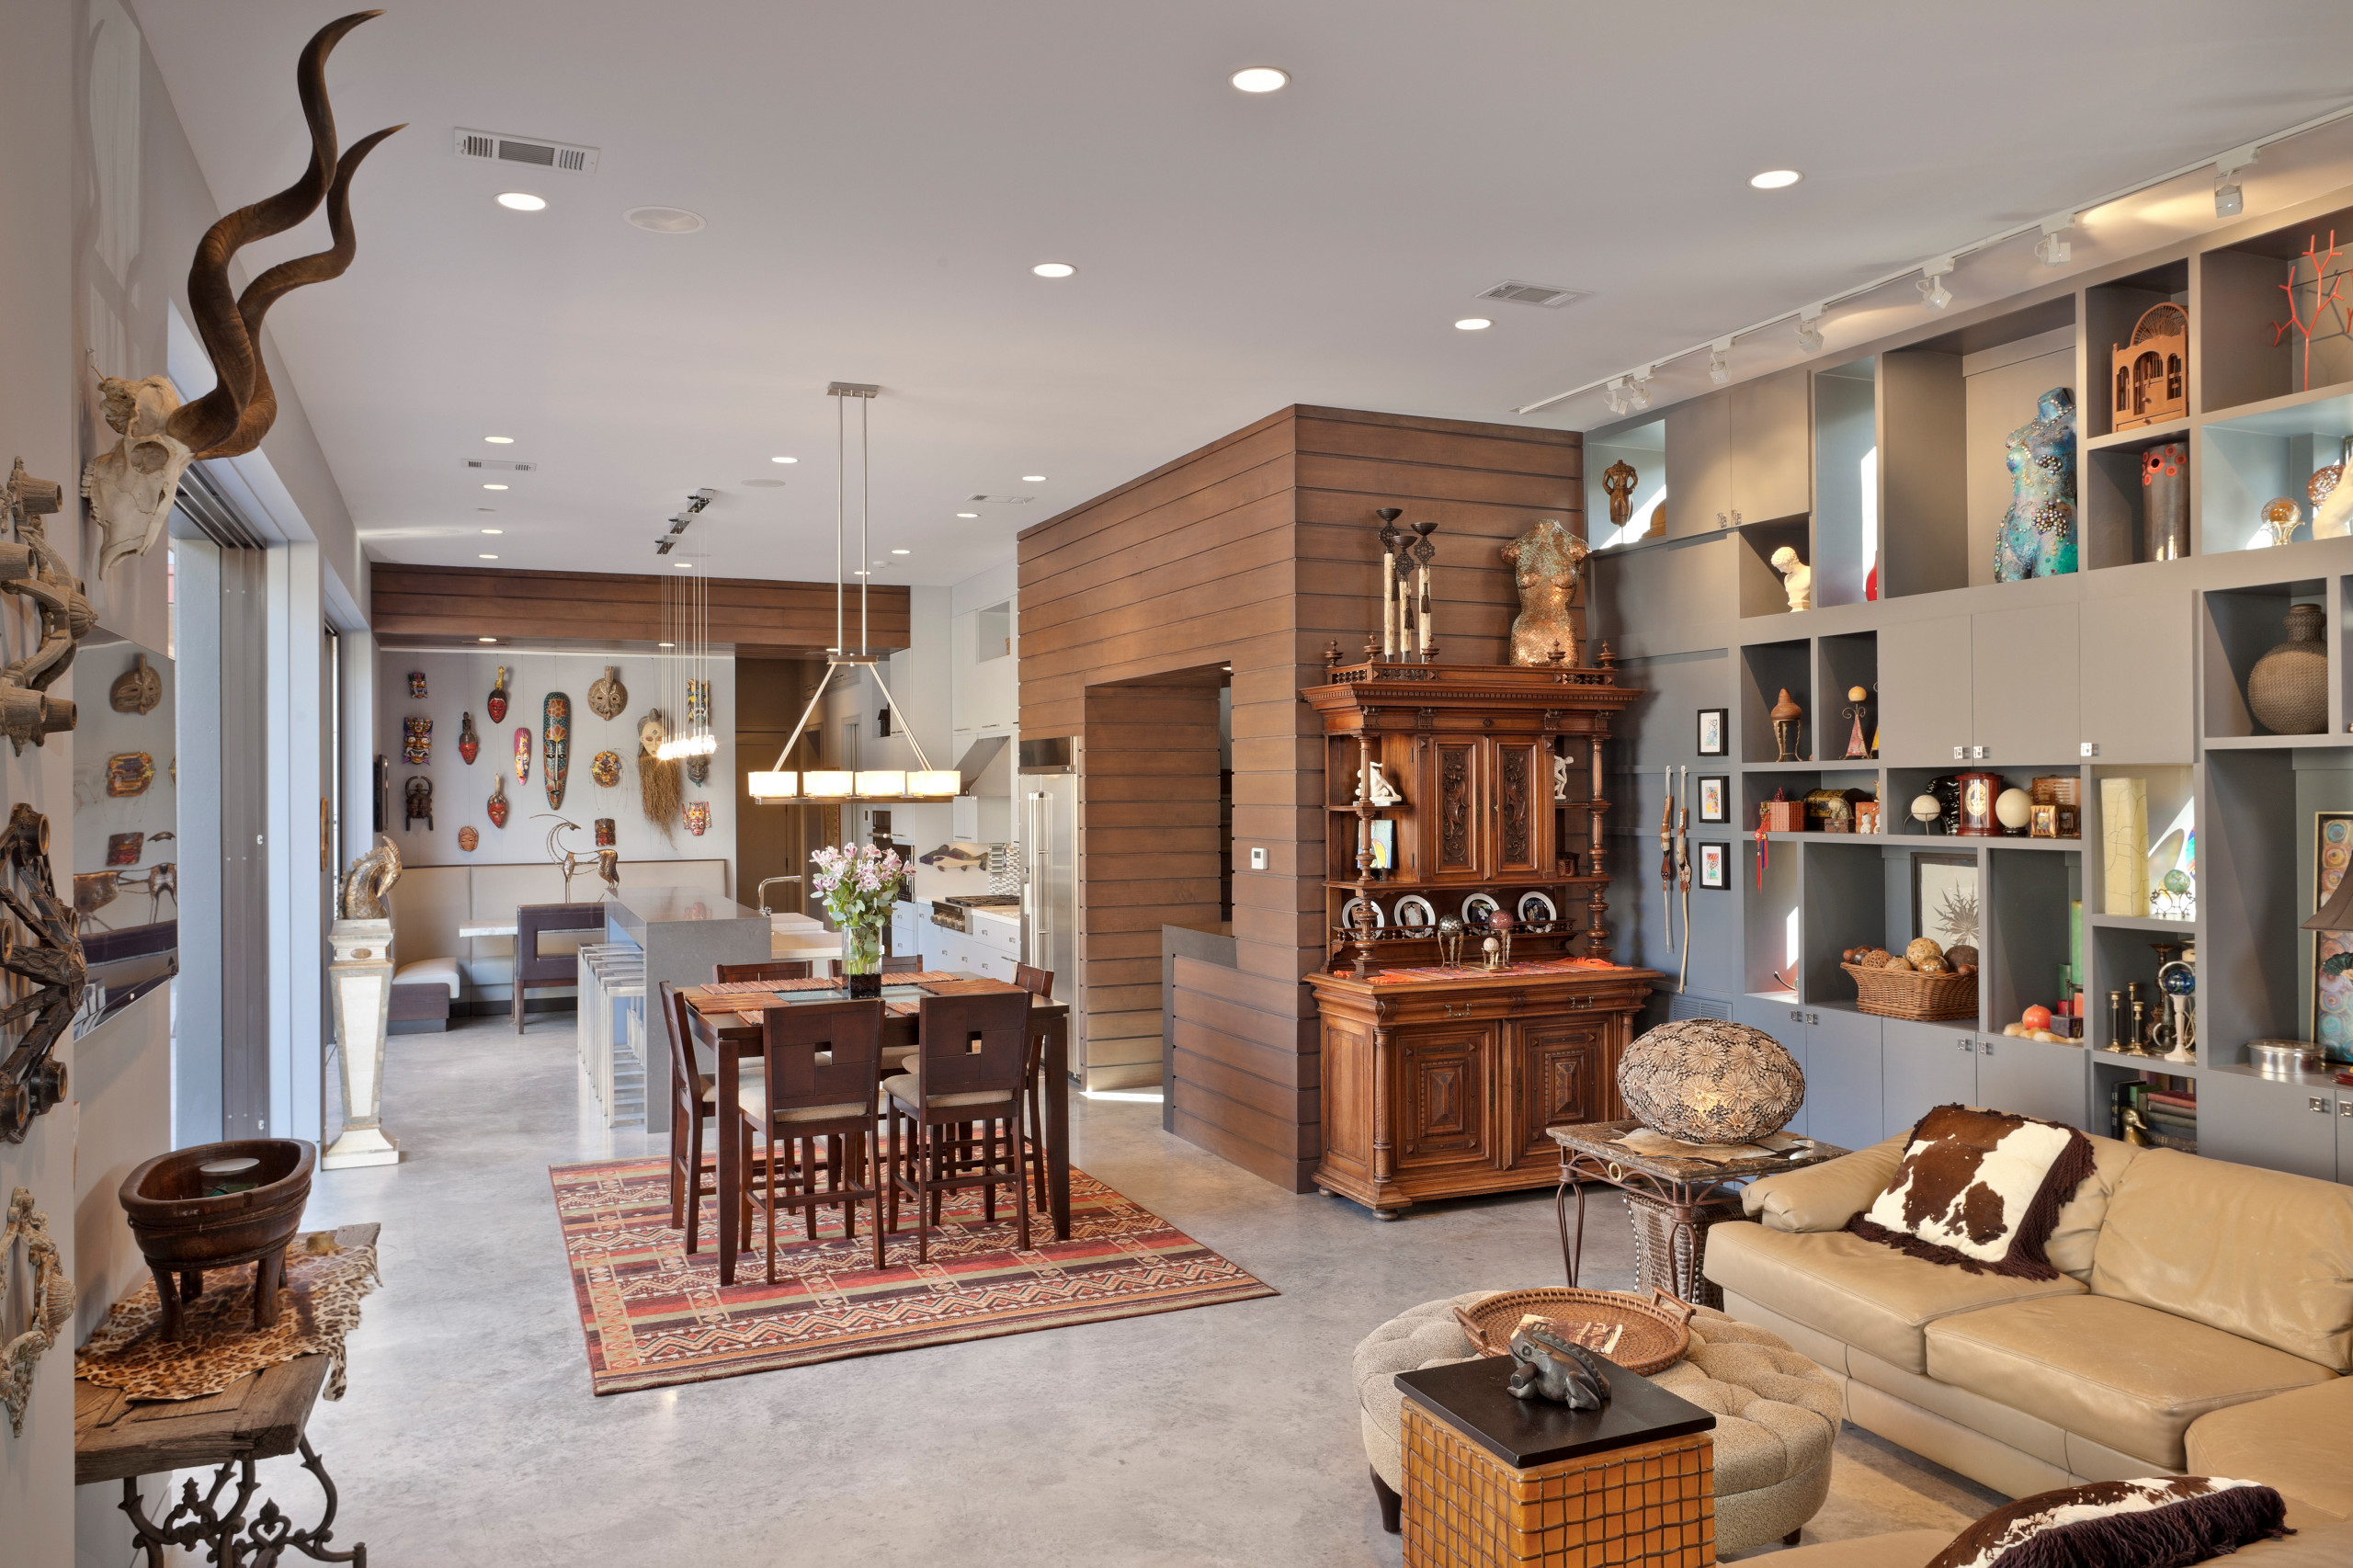 Heights Eclectic New Home